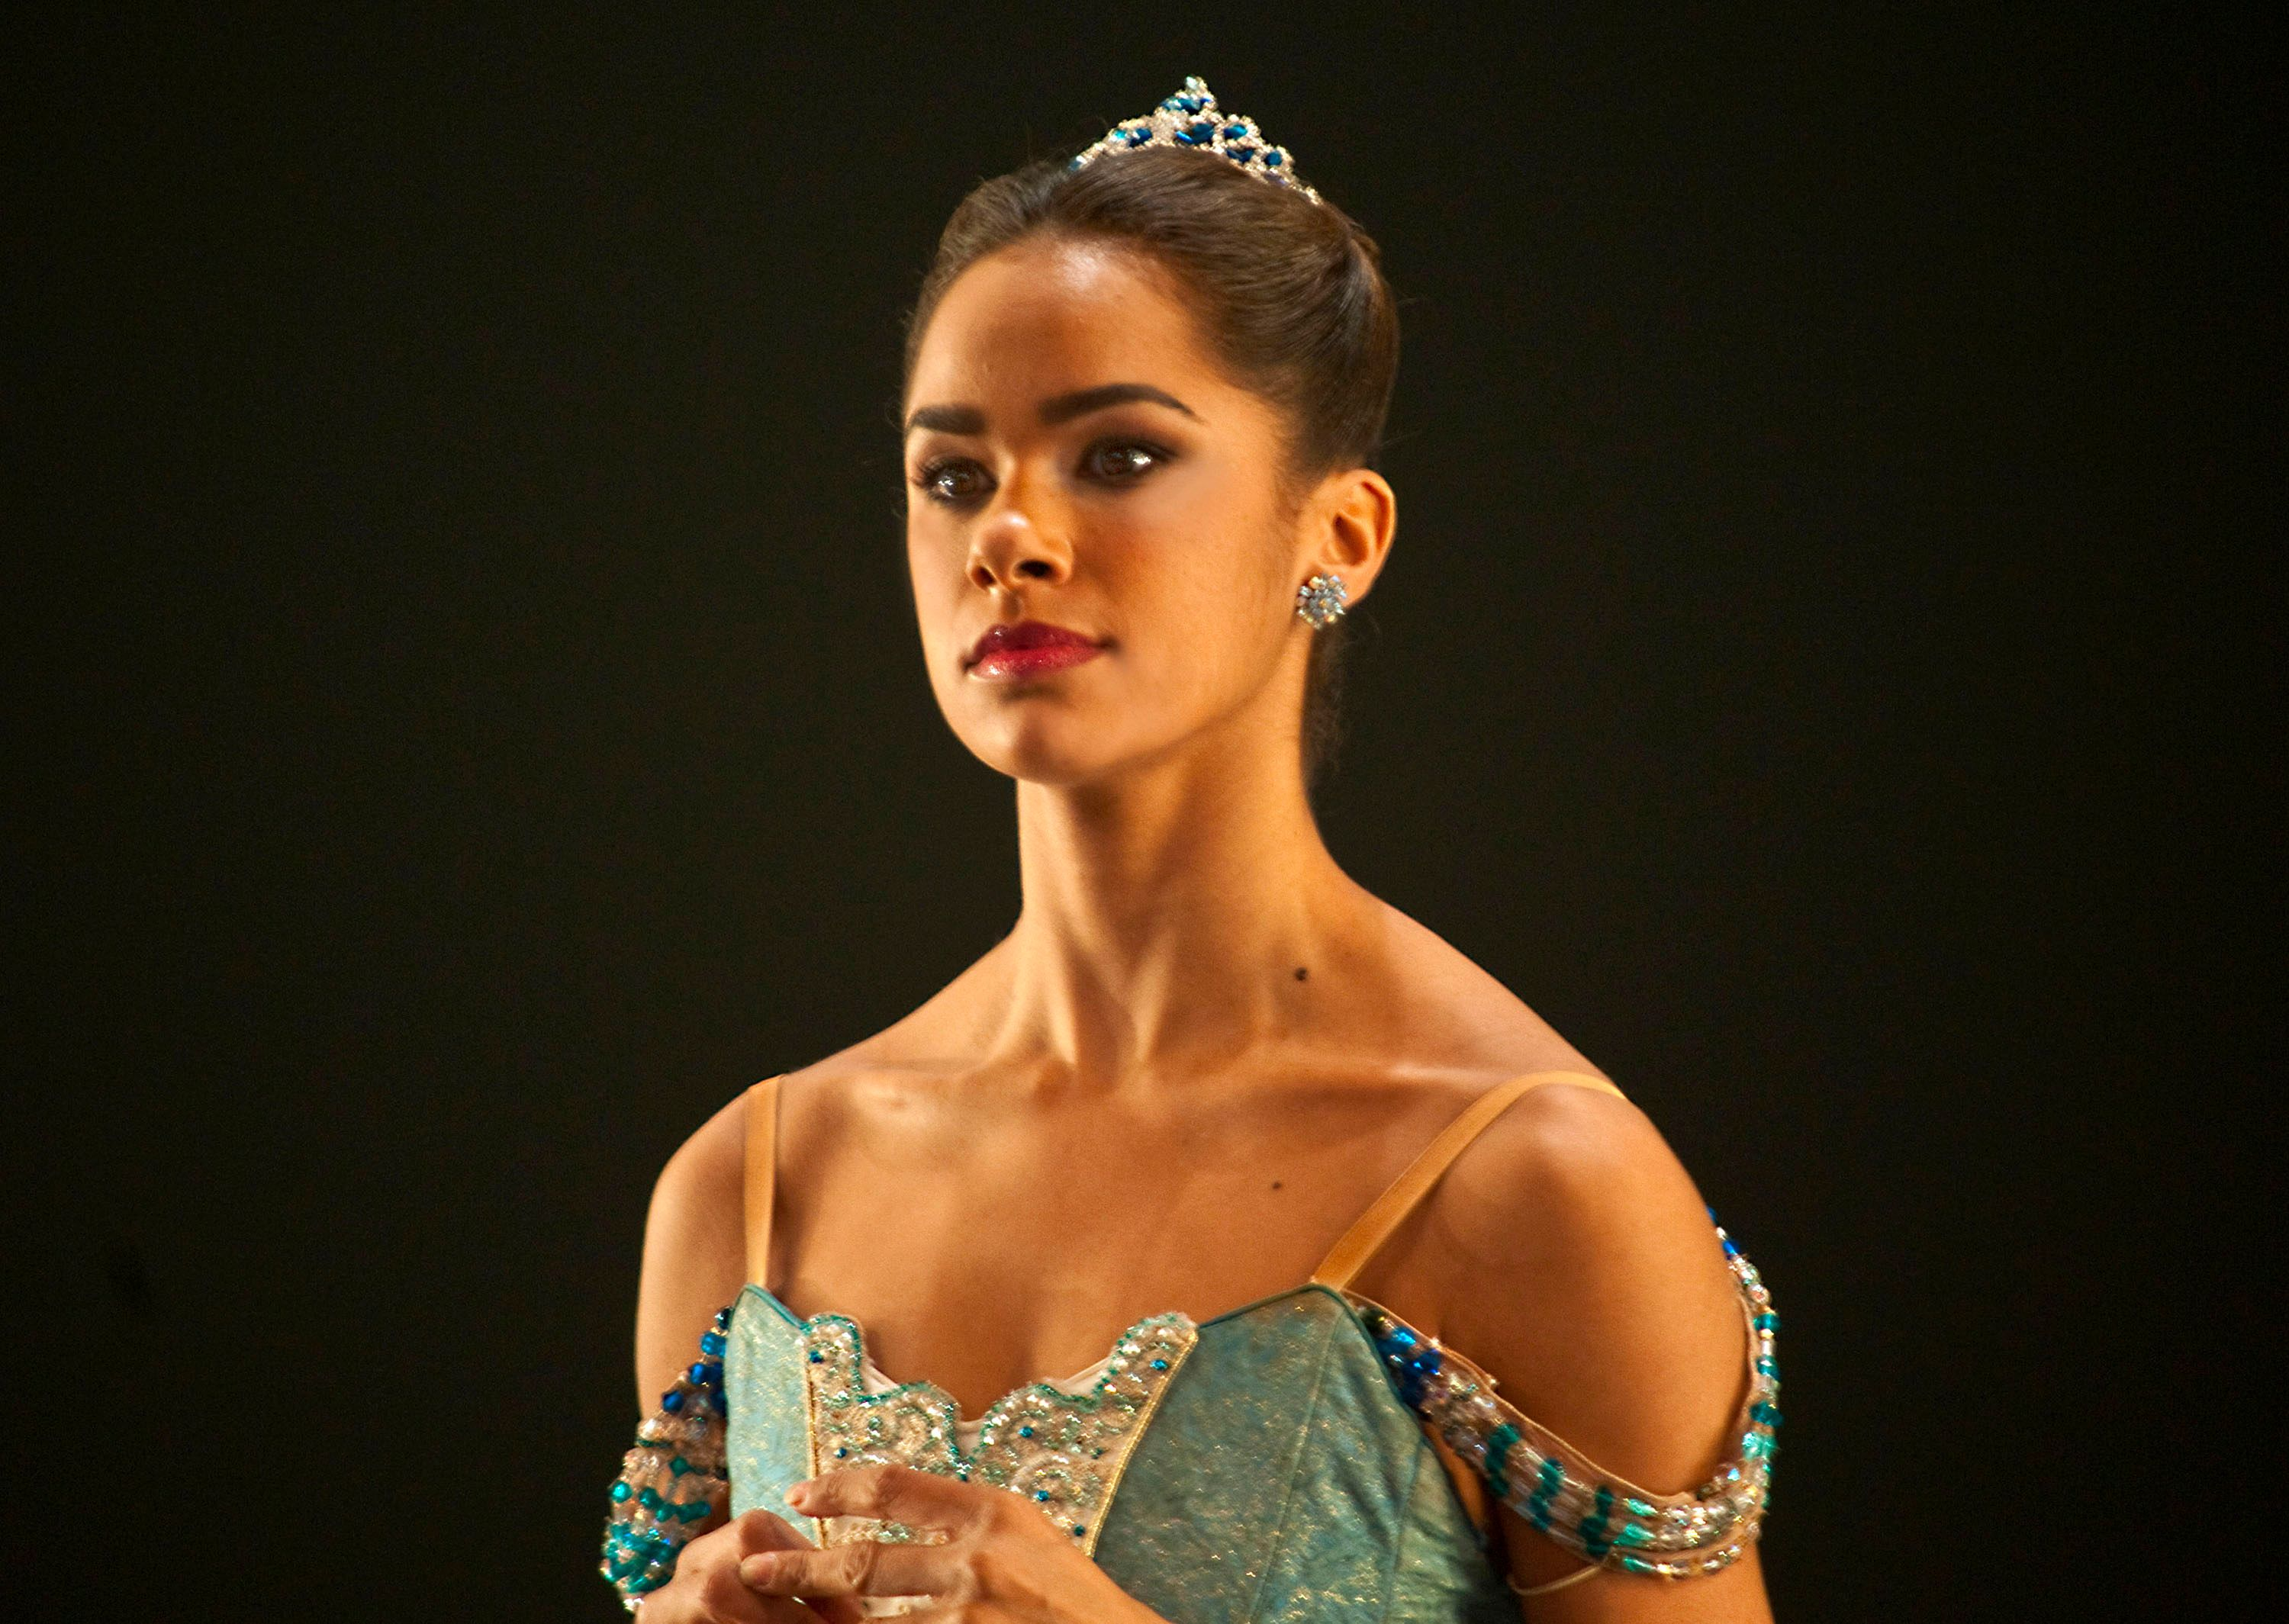 Misty Copeland naked (47 fotos), photo Feet, Twitter, in bikini 2020